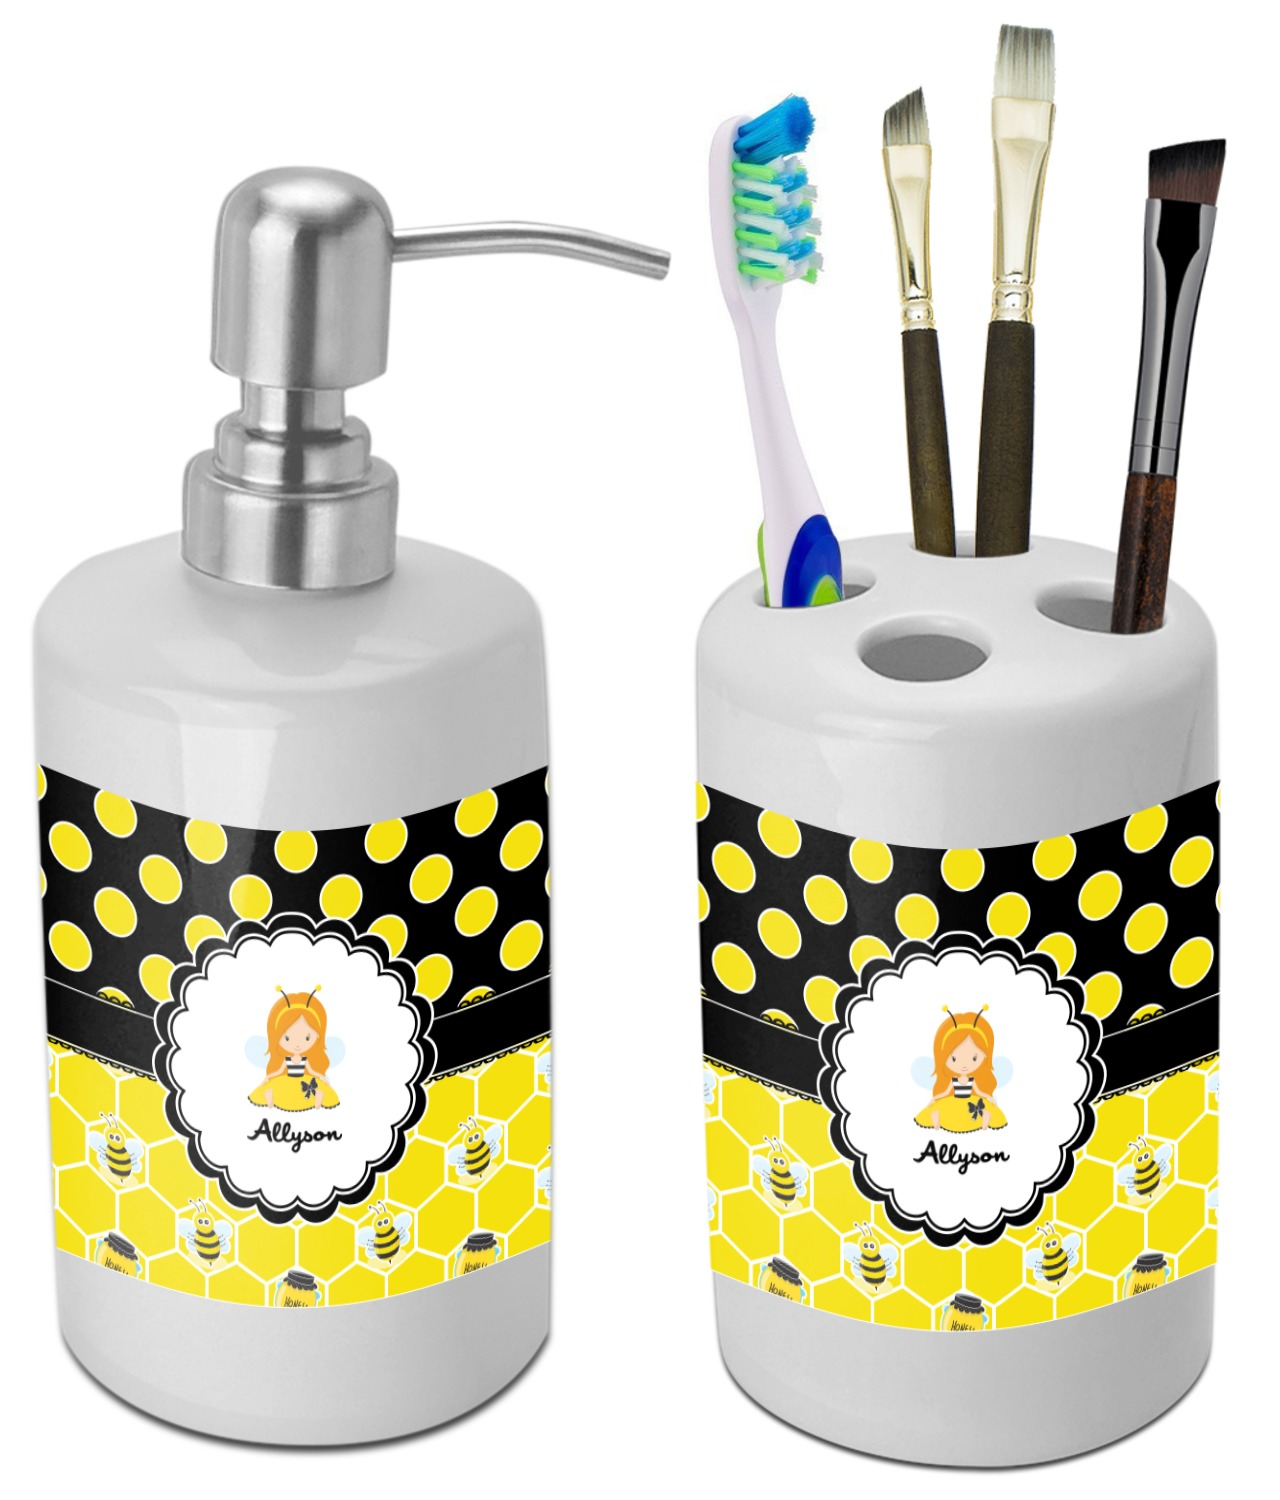 Honeycomb Bees Polka Dots Bathroom Accessories Set Ceramic Personalized Youcustomizeit